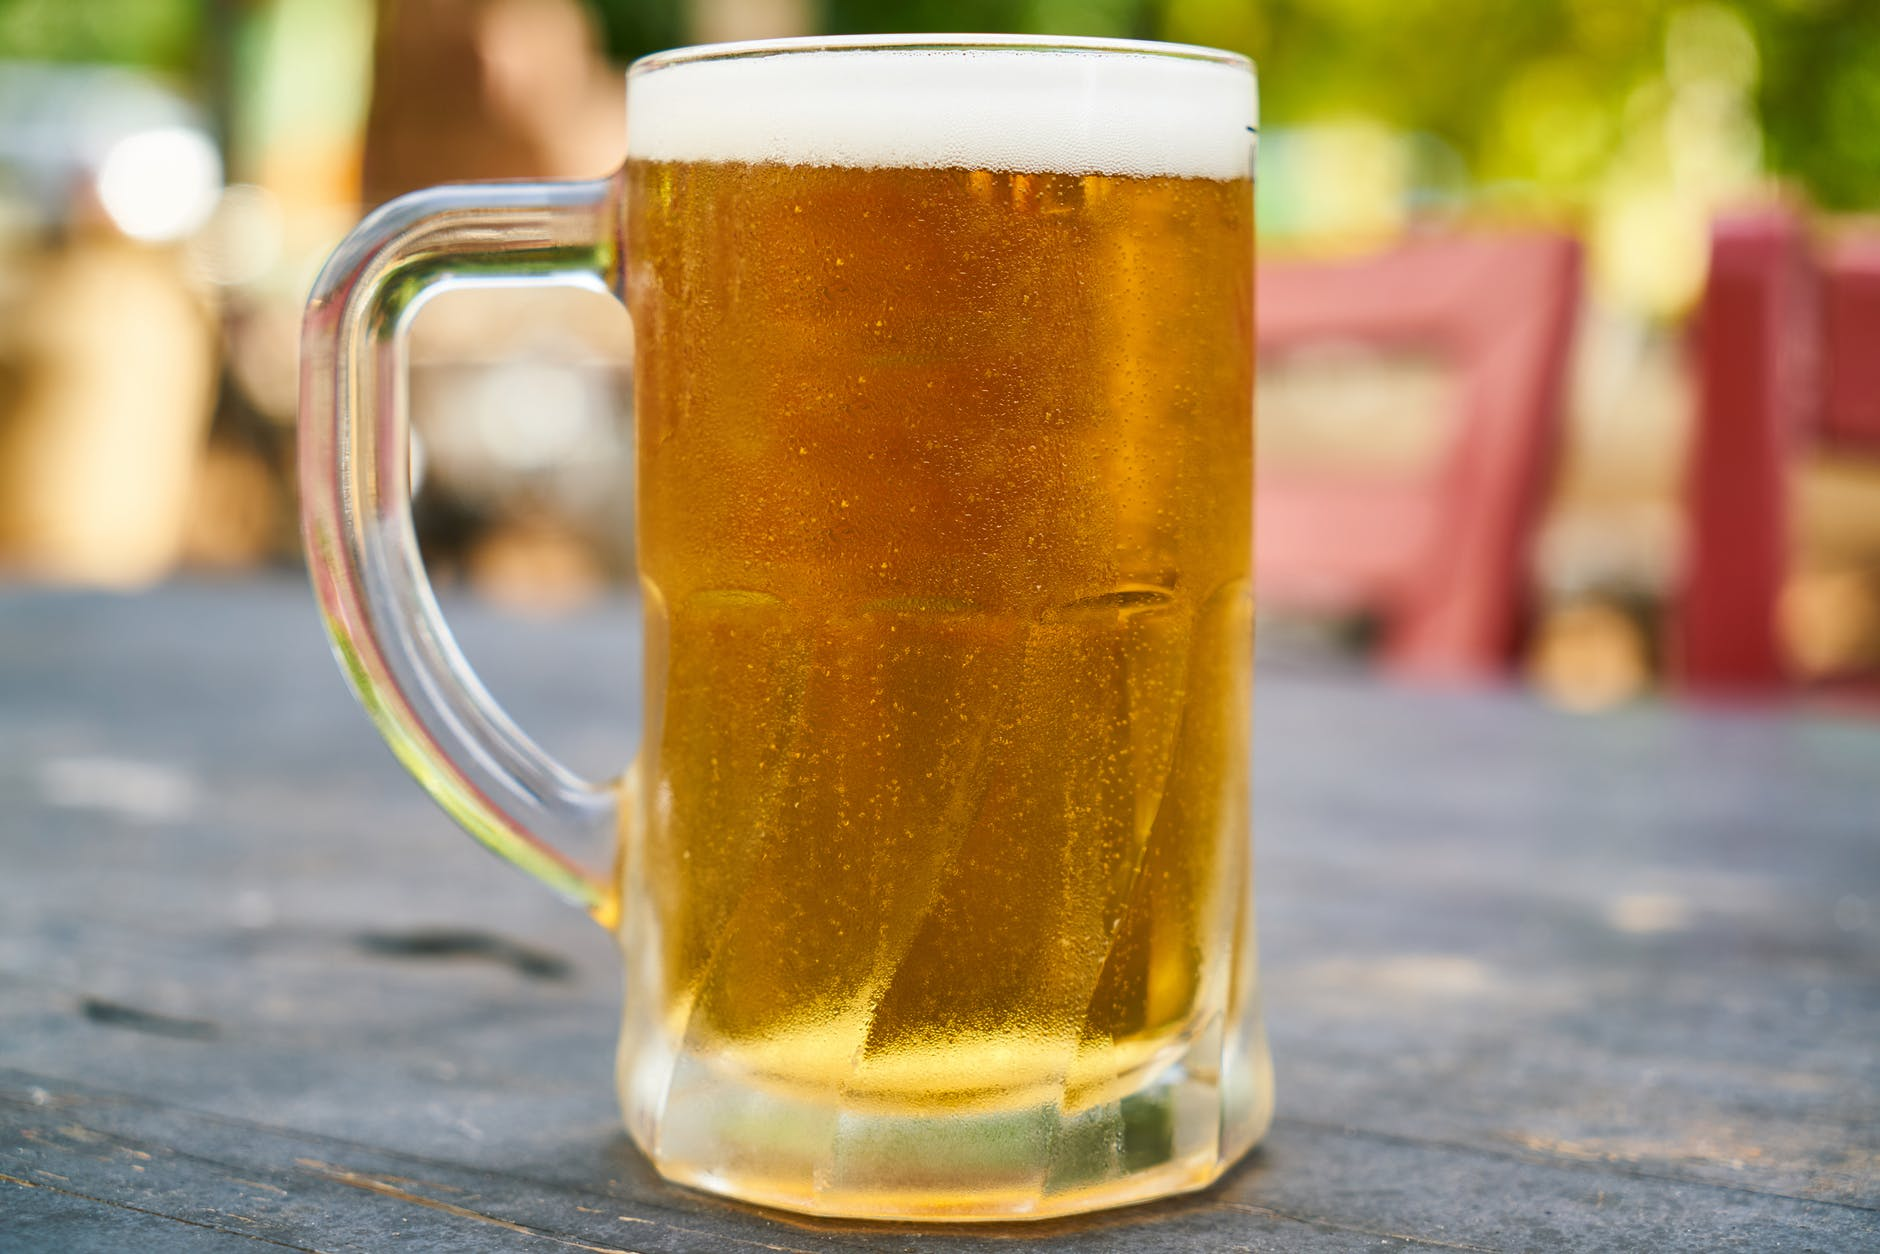 beer filled mug on table